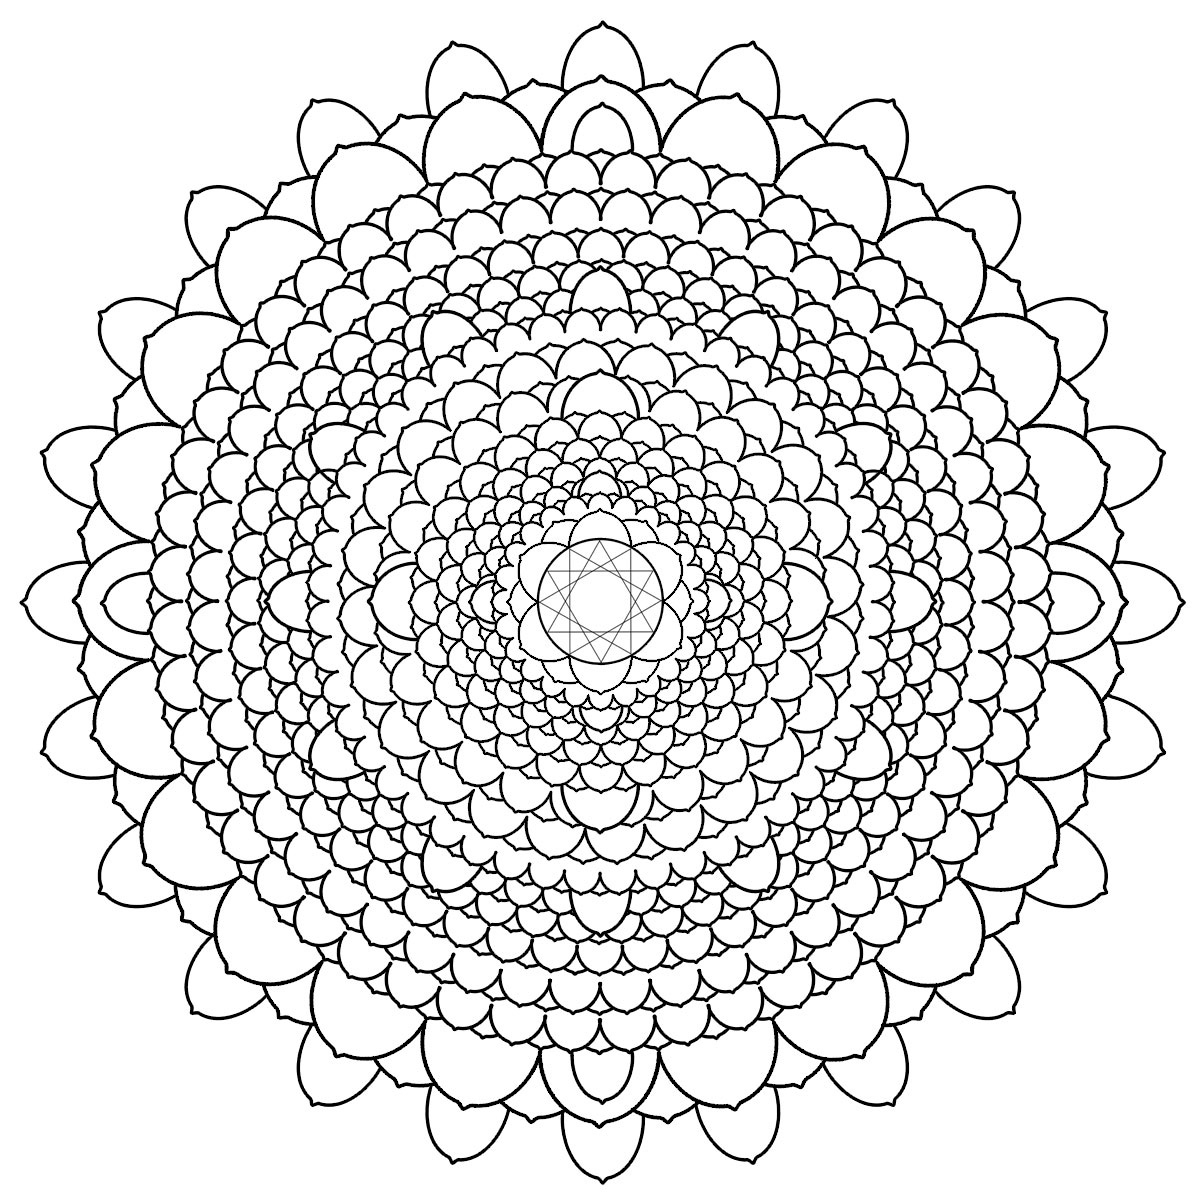 Amazing Free Printable Mandalas 23 Mandala Coloring Pages For Adults Gallery Of Celtic